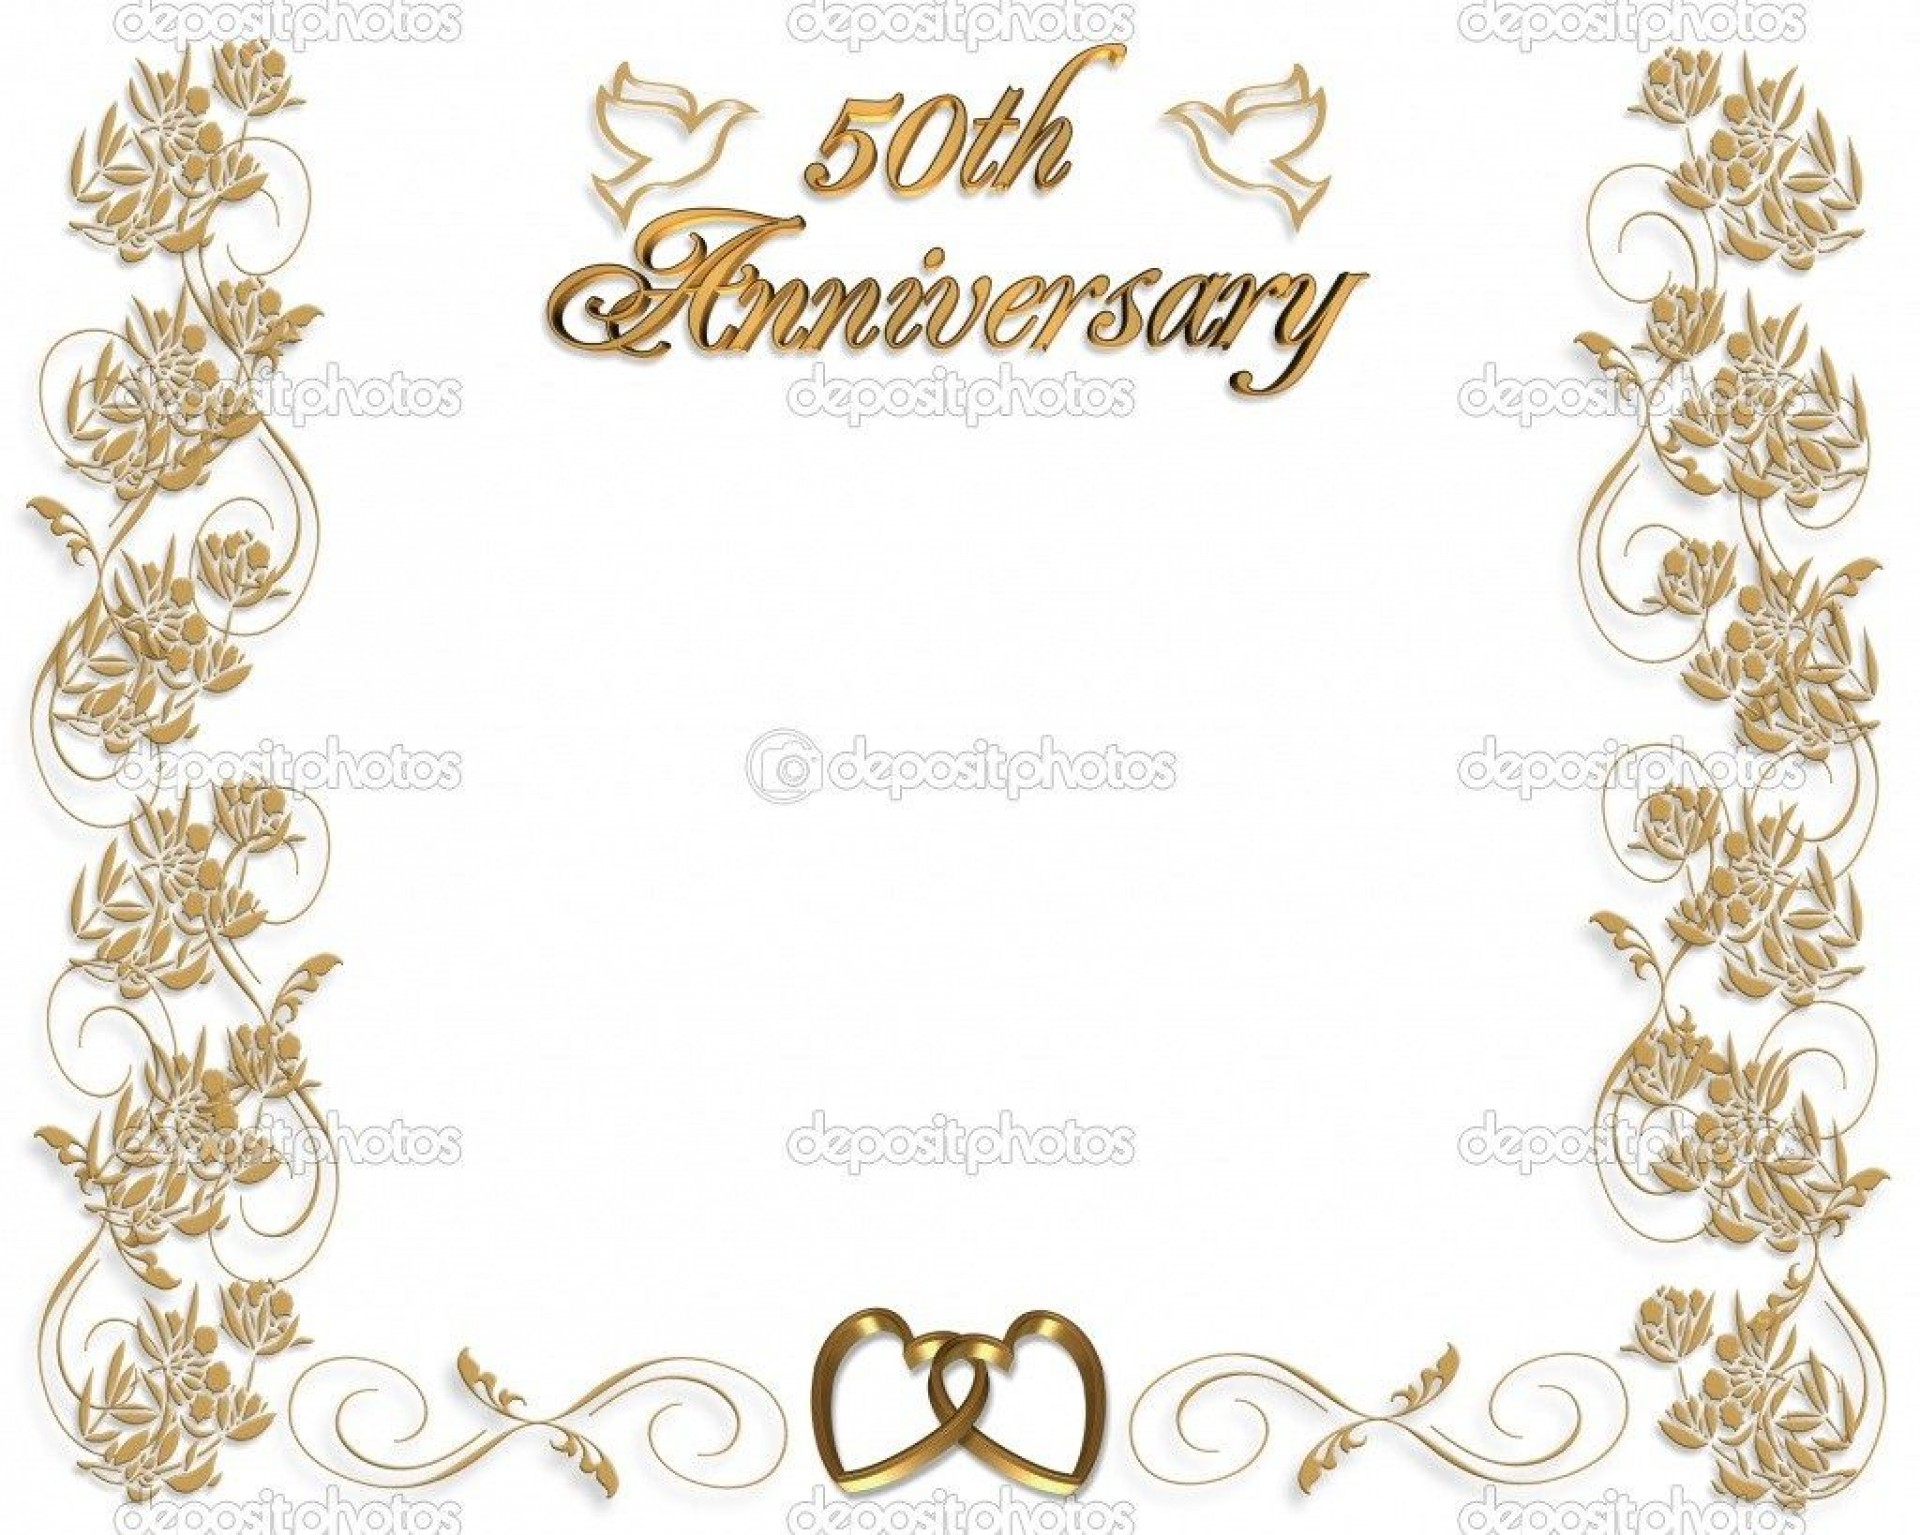 004 Magnificent 50th Anniversary Party Invitation Template Design  Templates Golden Wedding Uk Microsoft Word Free1920